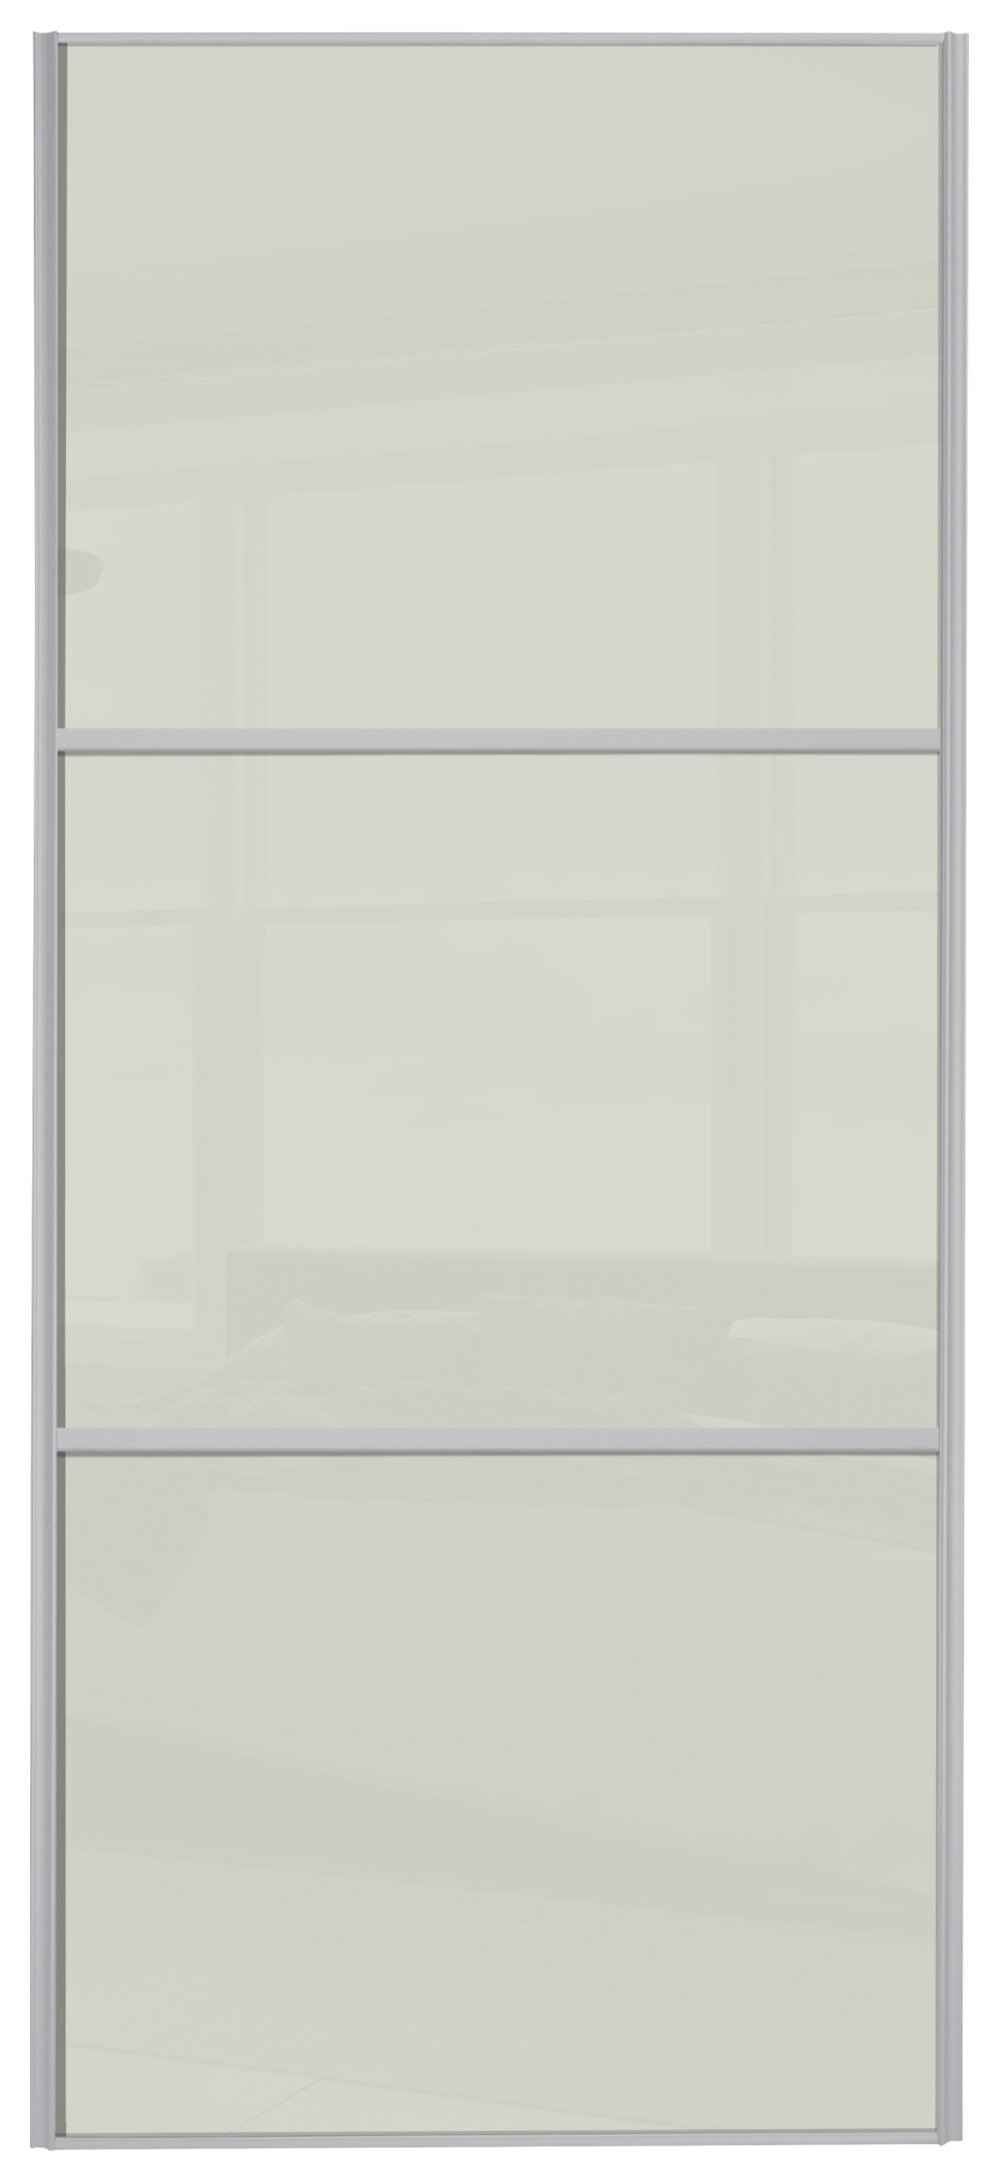 Sliding Wardrobe Door W762mm 3 Panel Soft White Glass review